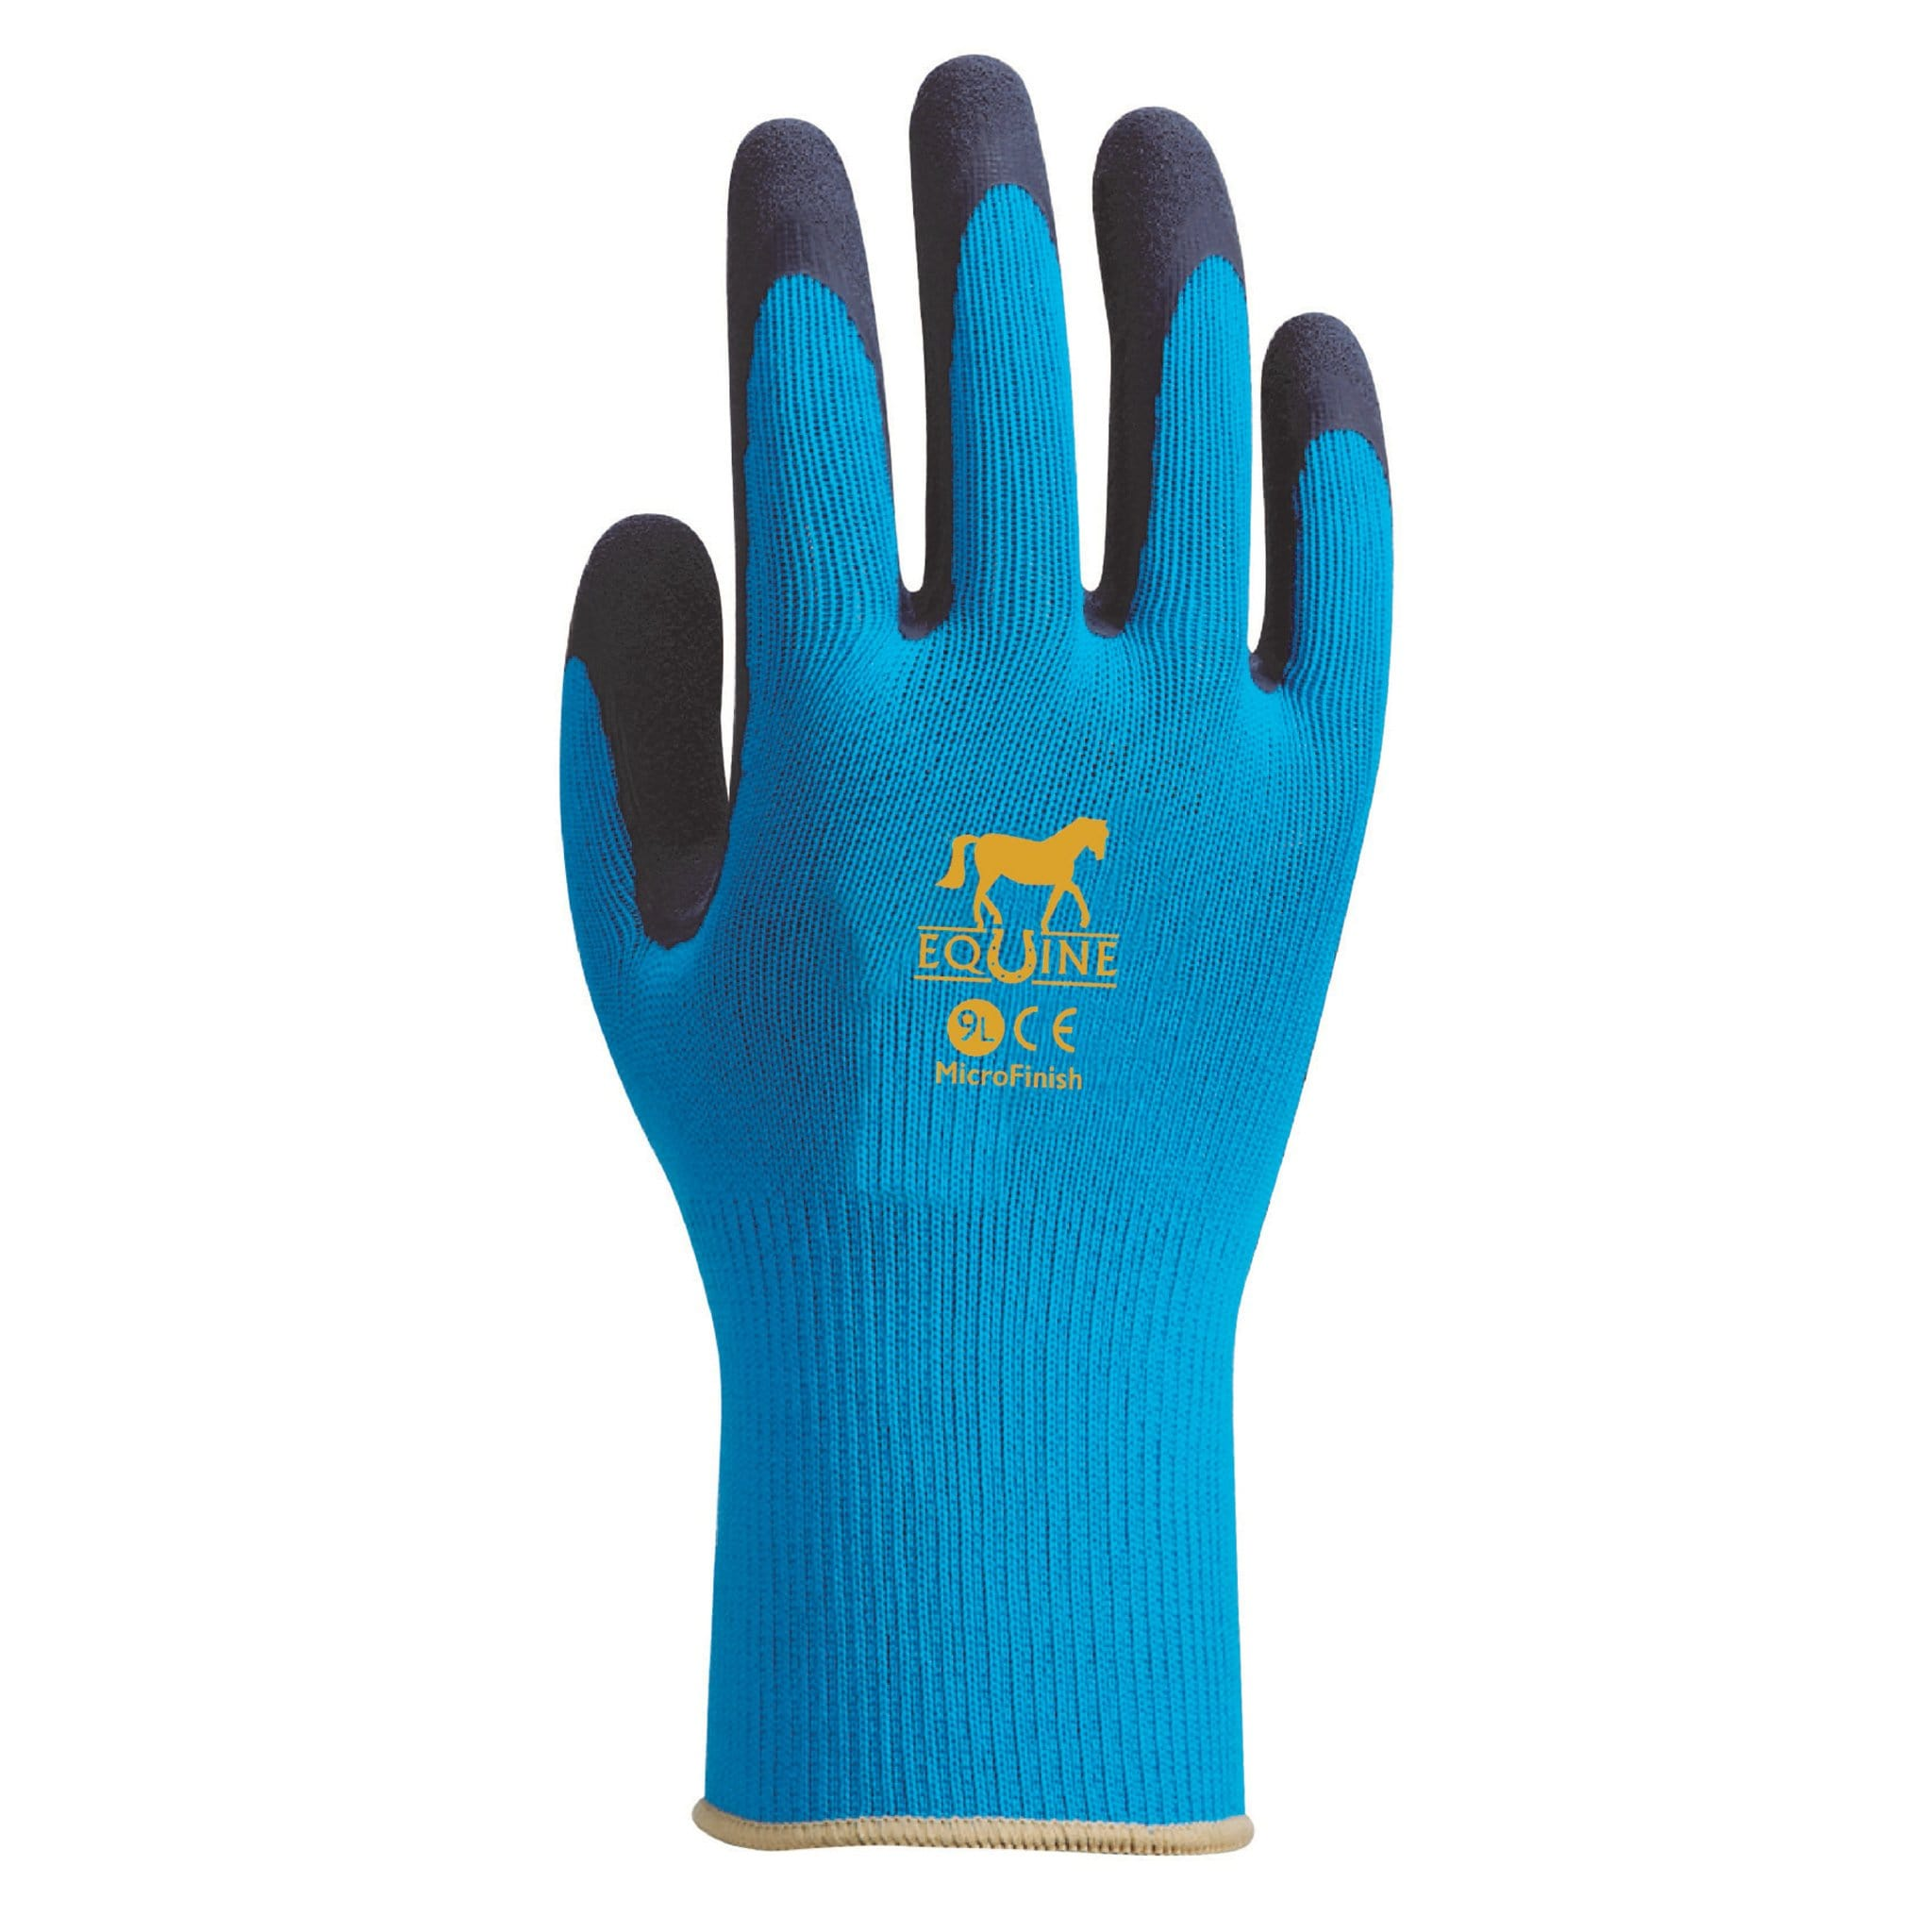 LeMieux Equine Work Gloves Blue 6608